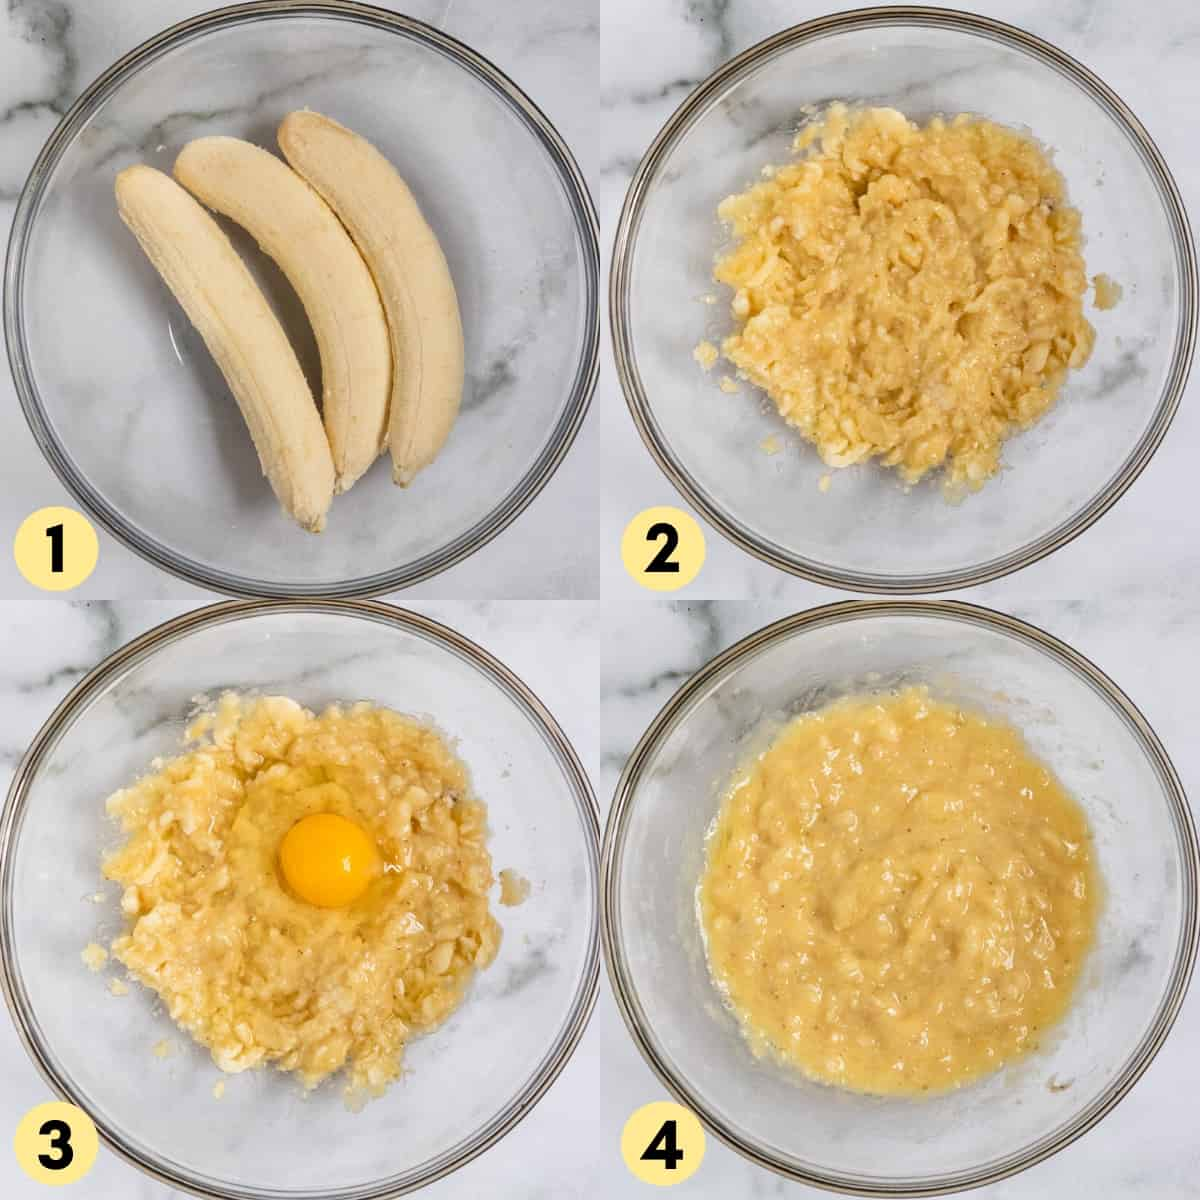 Bananas mashed in mixing bowl with egg.